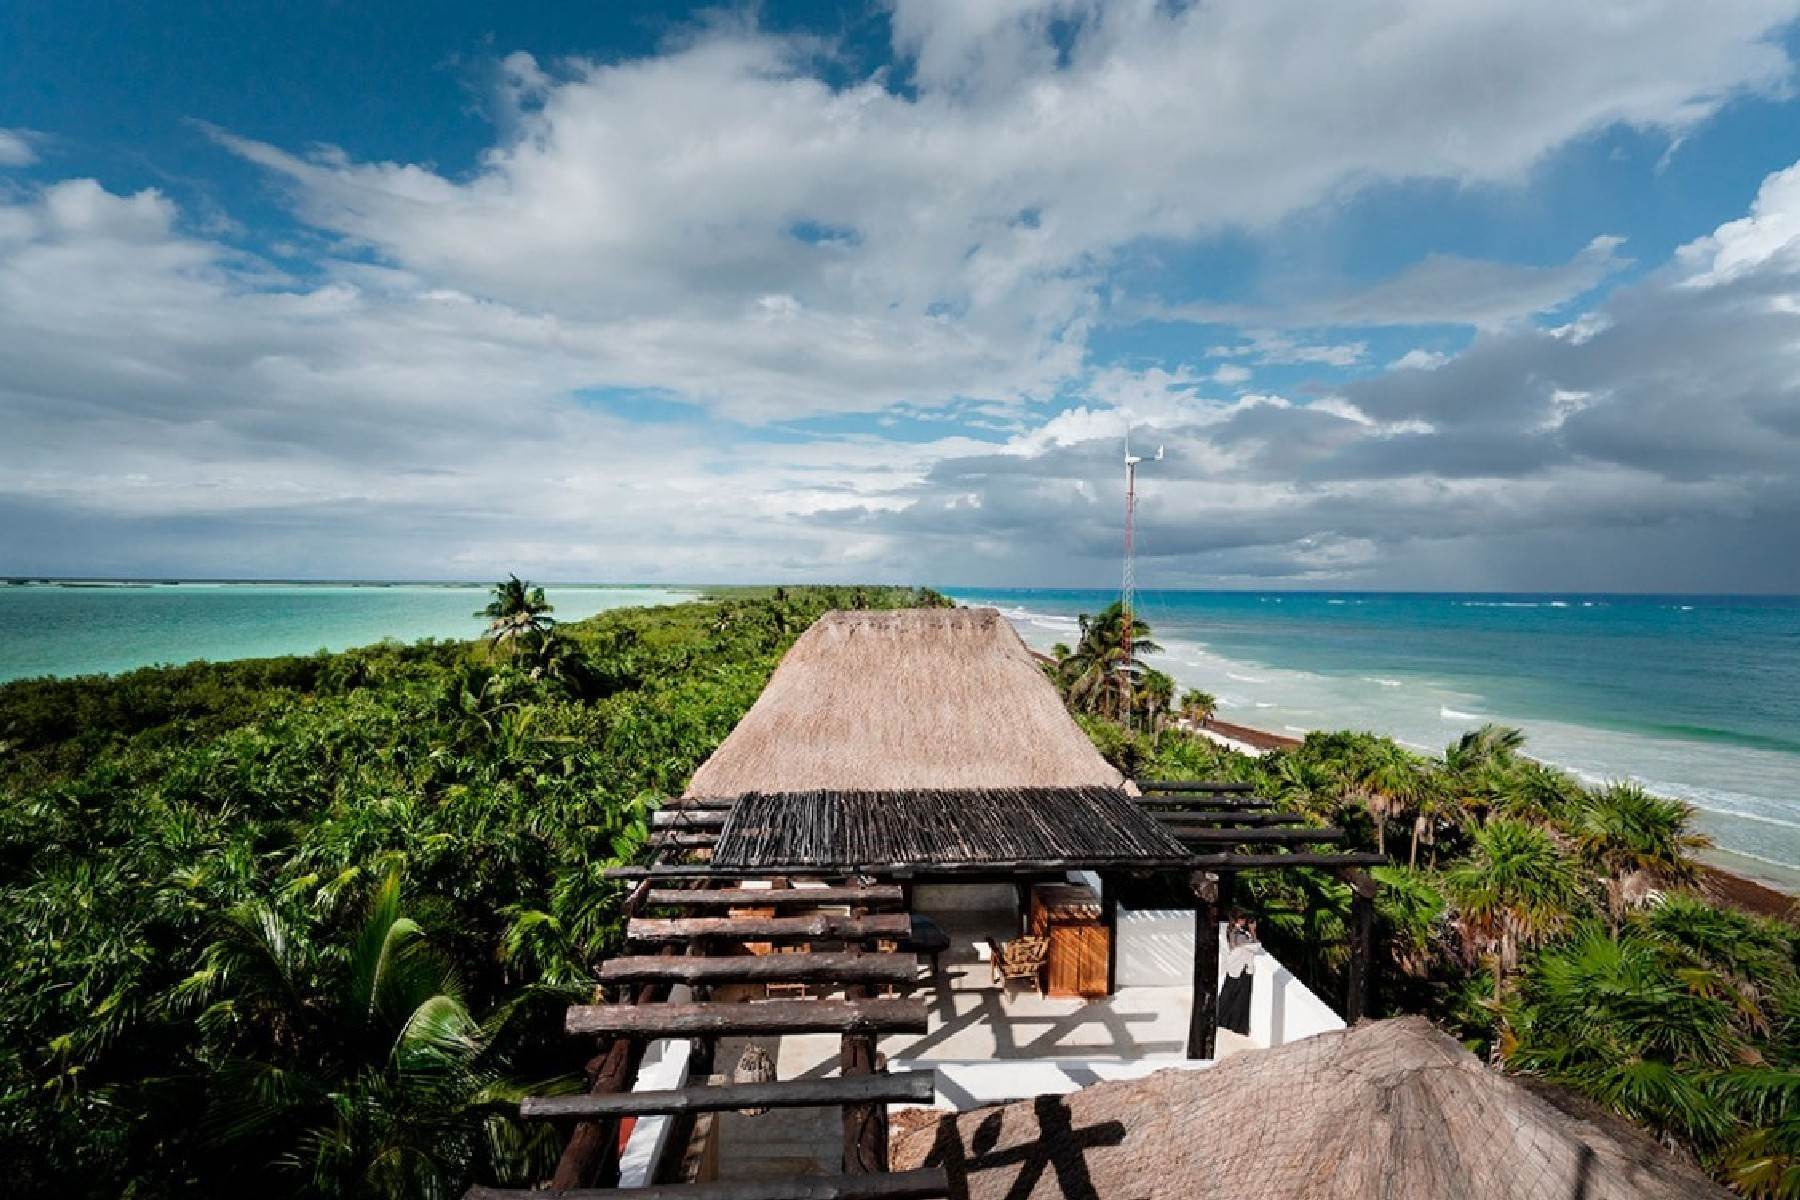 Single Family Homes for Sale at CASA ROSSO BEACHFRONT HOME Sian Kaan, Other Areas In Mexico Mexico